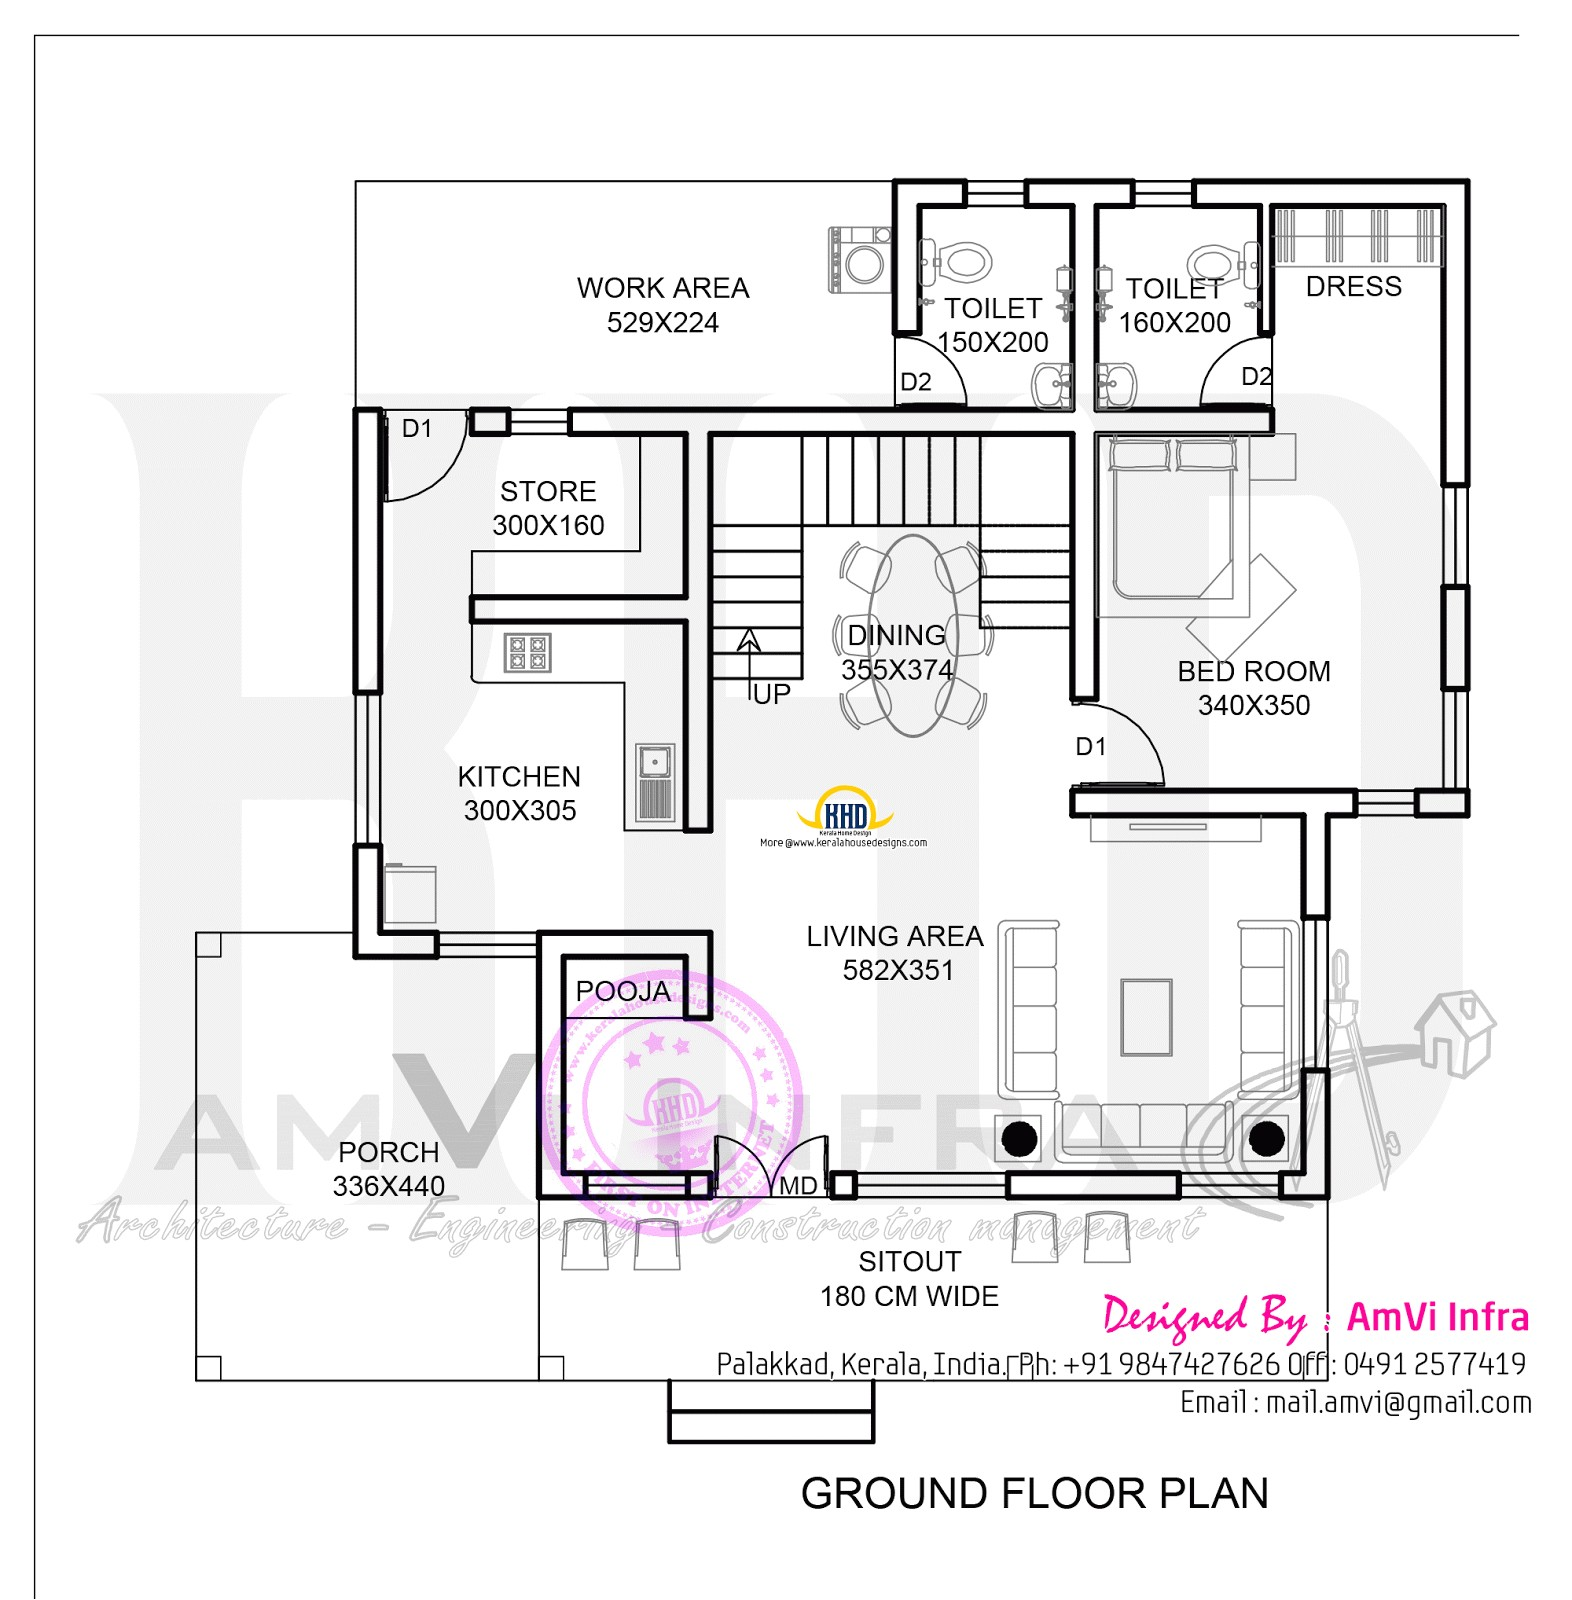 Ground Floor Plan for Home 178 Square Yards House Elevation and Plan Home Kerala Plans